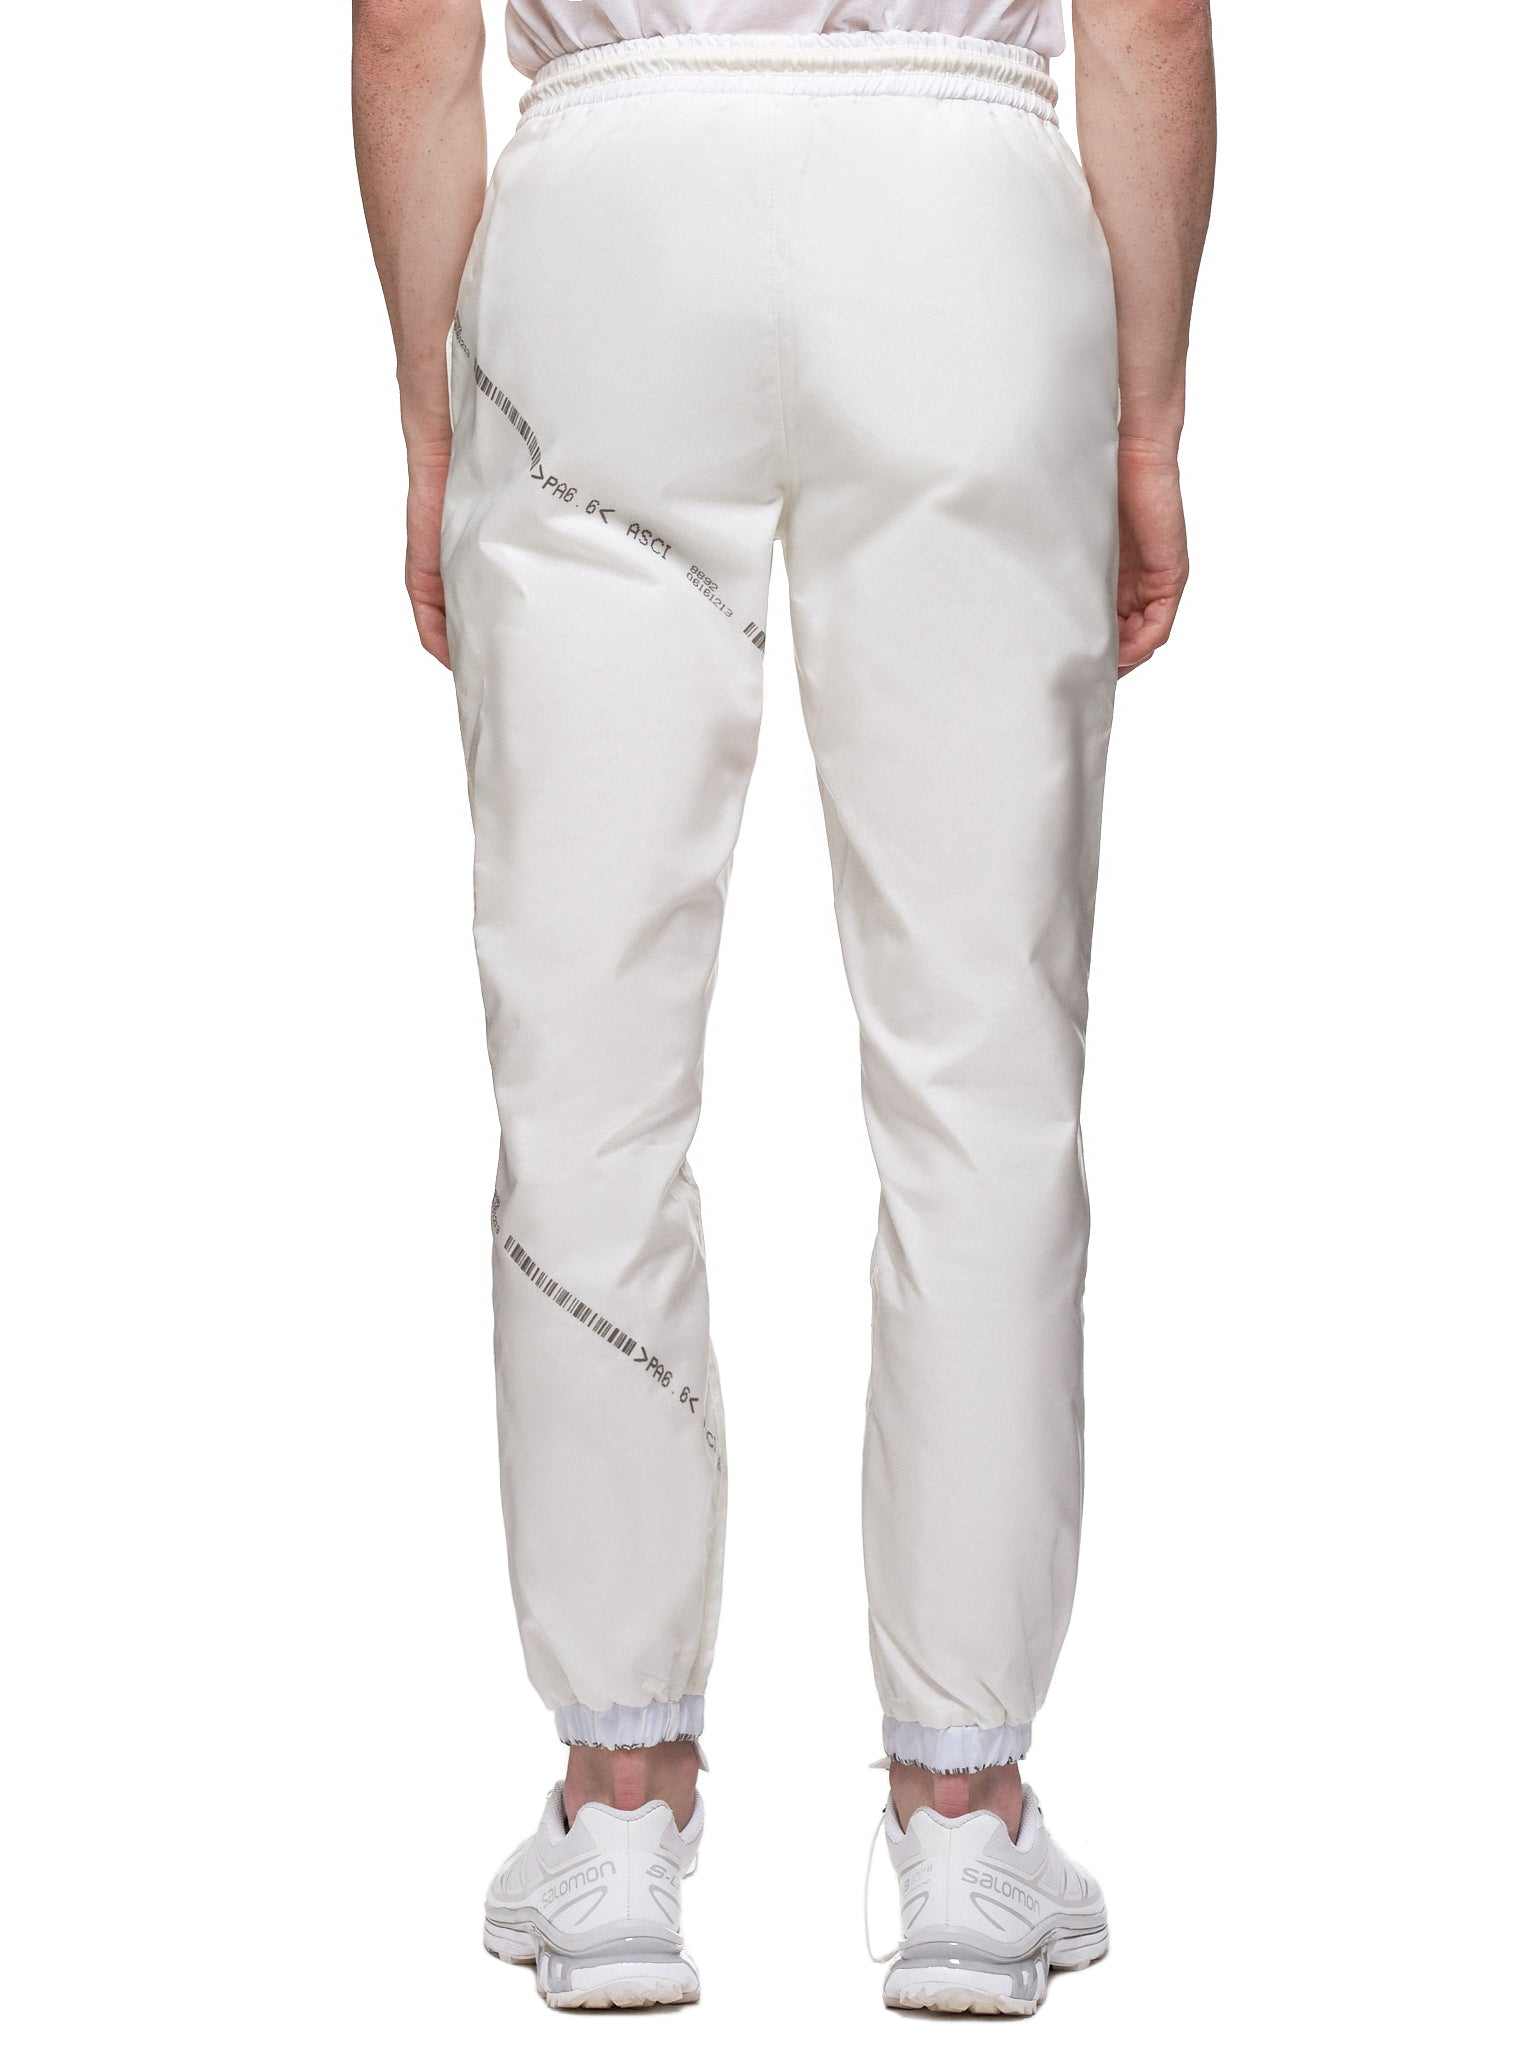 Kanghyuk Airbag Trousers - Hlorenzo Back